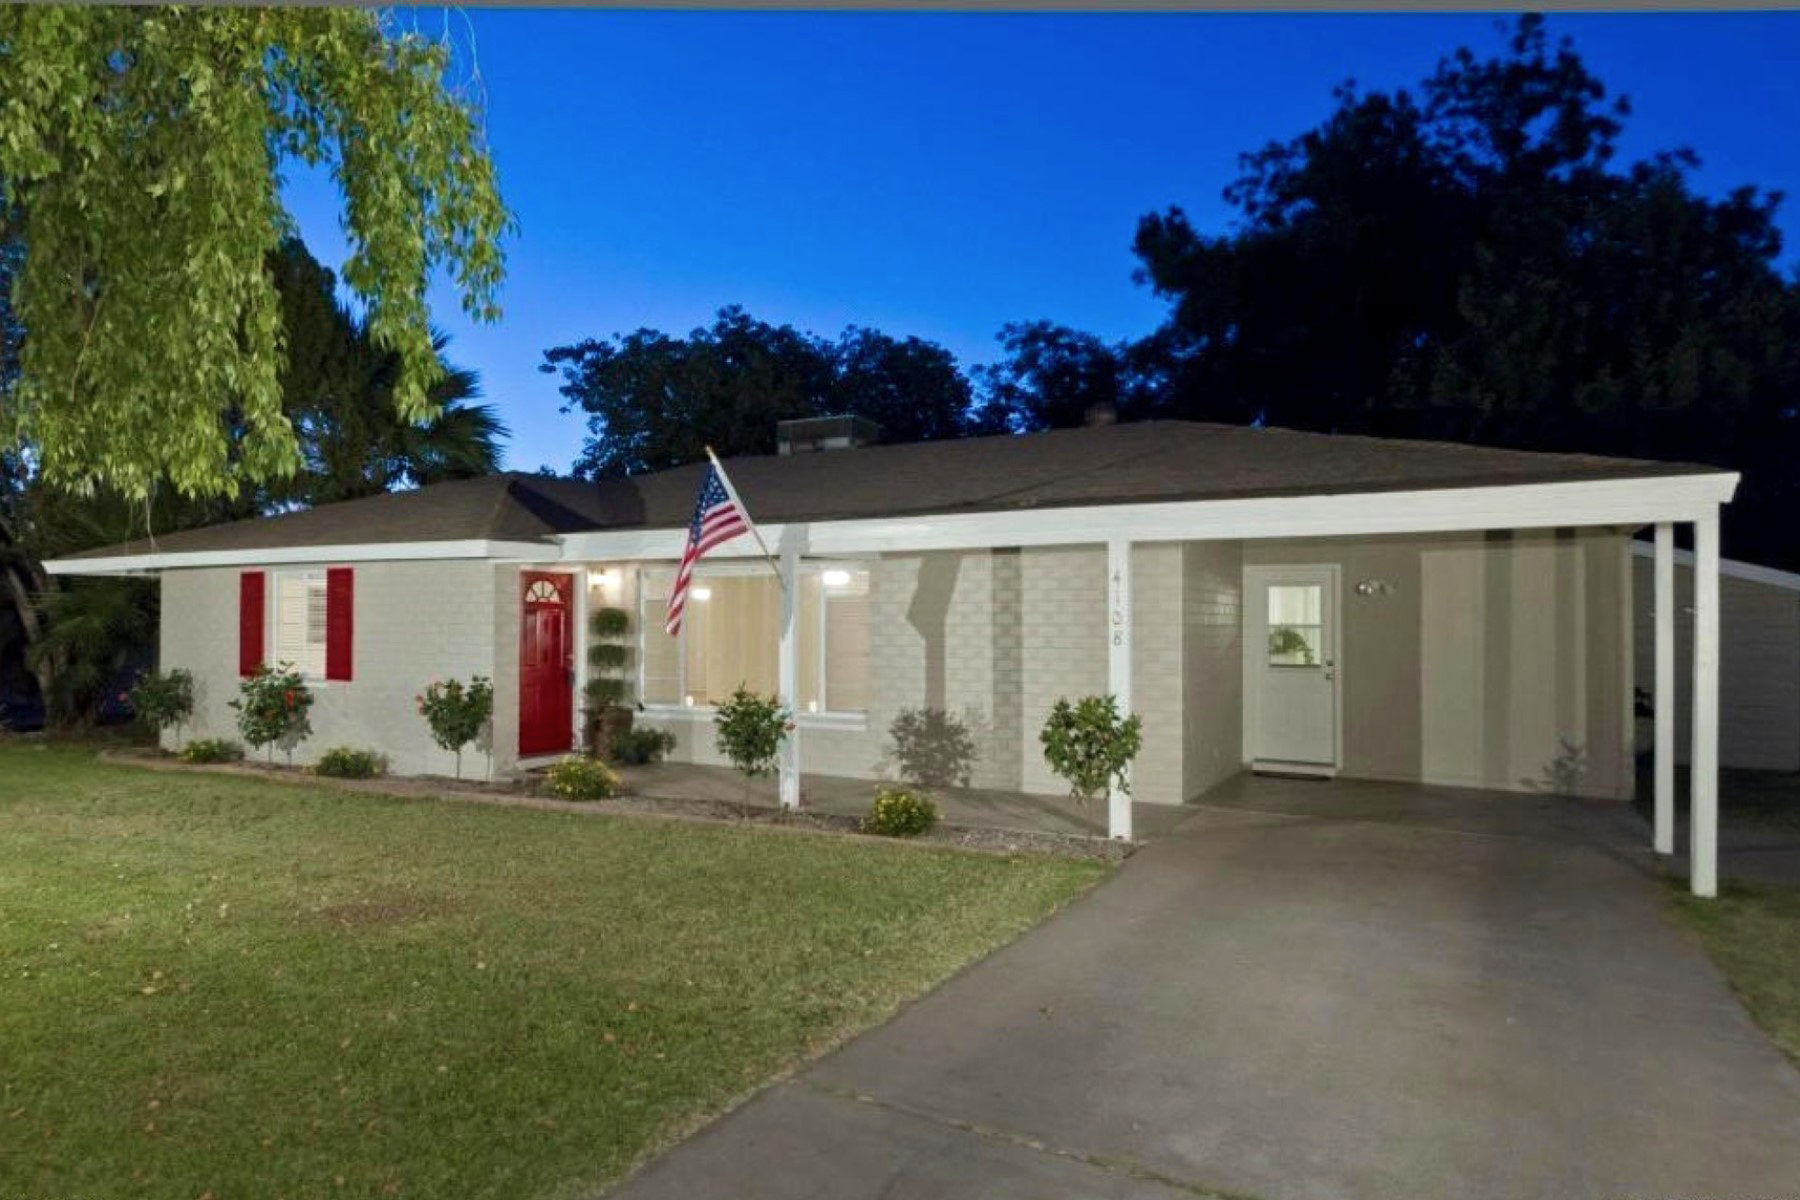 獨棟家庭住宅 為 出售 在 Delightfully Remodeled Ranch On A Quiet, Tree Lined Street In Rancho Ventura 4108 E Pinchot Ave Phoenix, 亞利桑那州 85018 美國